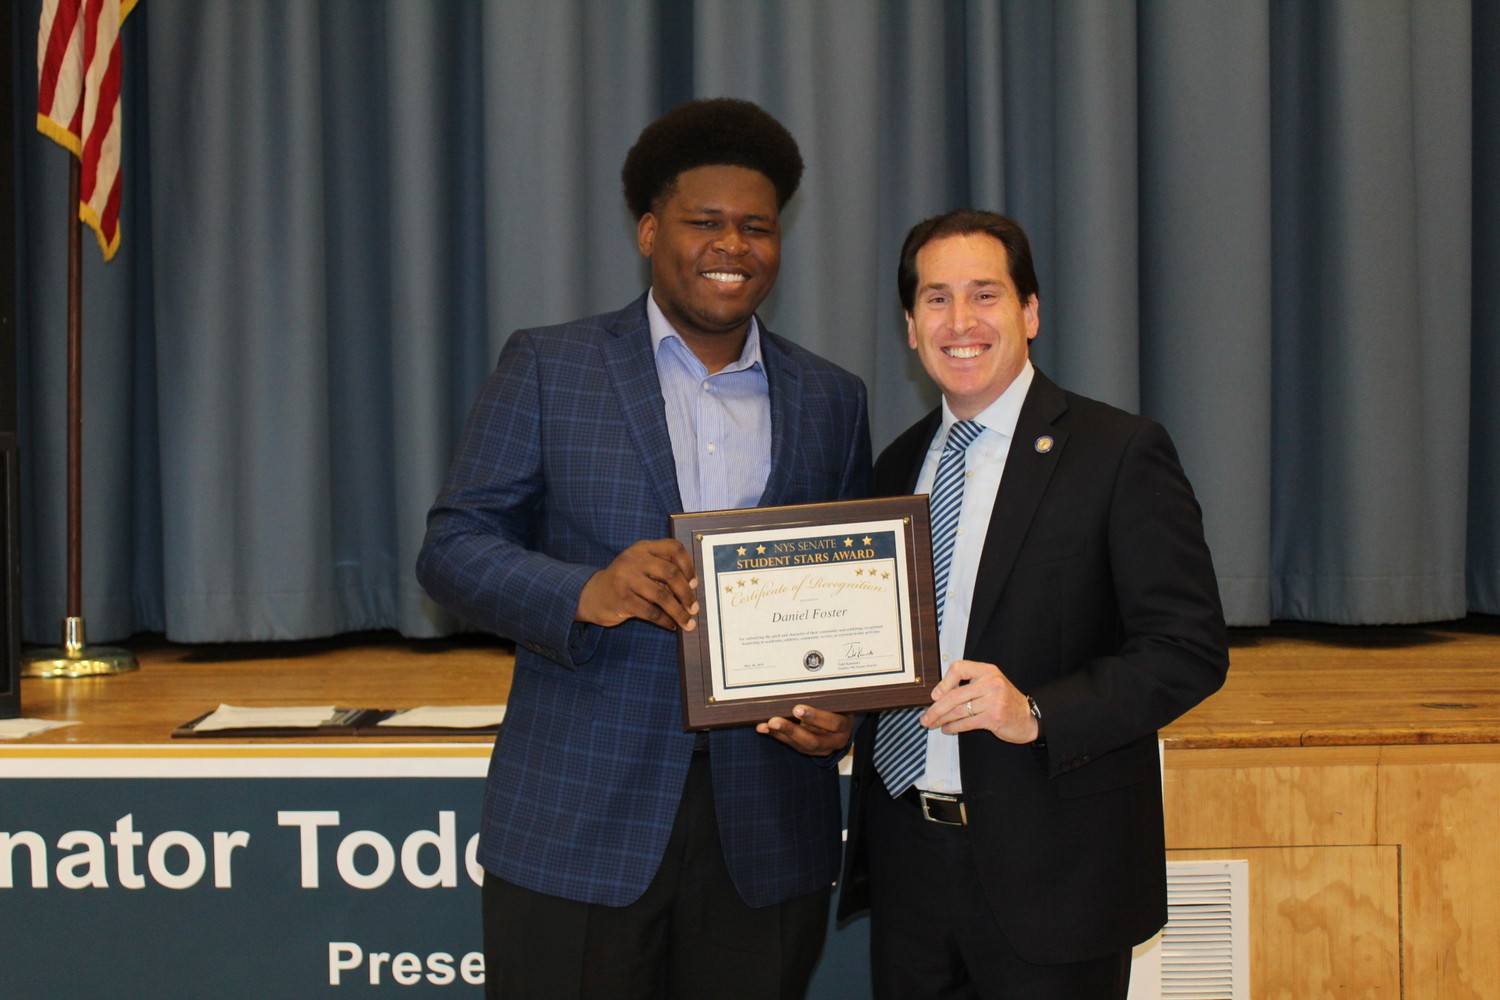 Hewlett High School senior Daniel Foster received a New York State Senate Student Star Award from State Sen. Todd Kaminsky for excelling in and outside of the classroom.